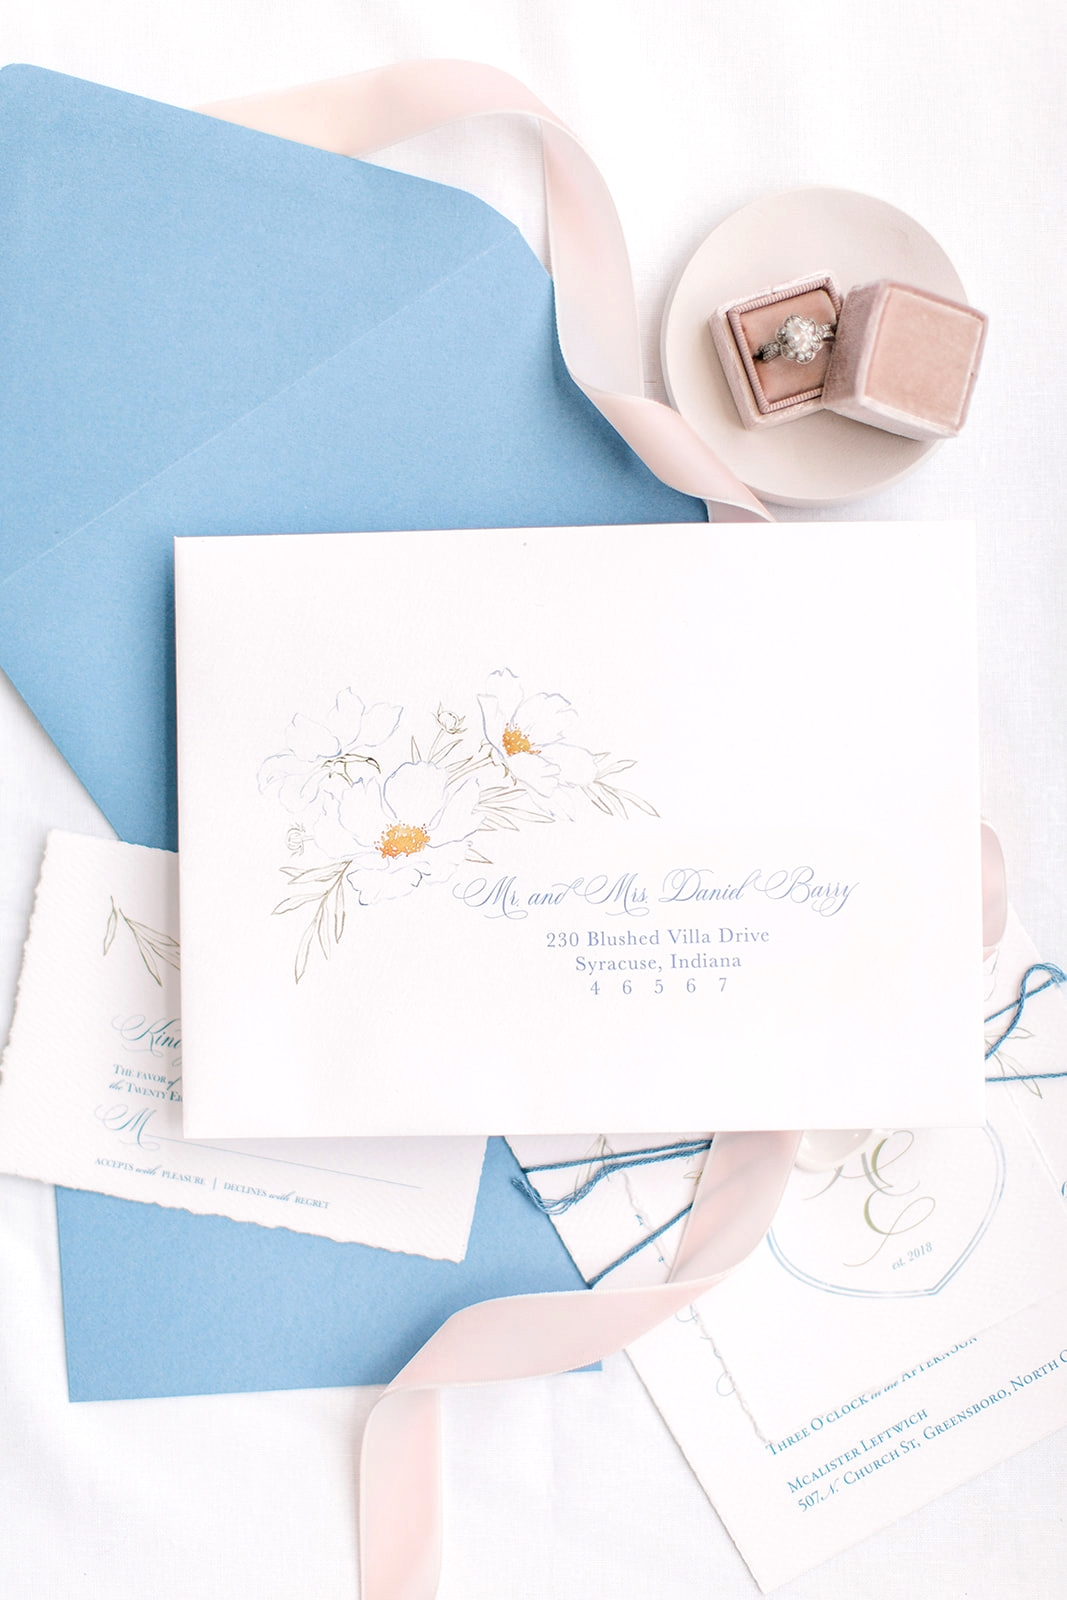 Copy of Beautiful calligraphy envelopes featuring watercolor artwork on handmade envelopes